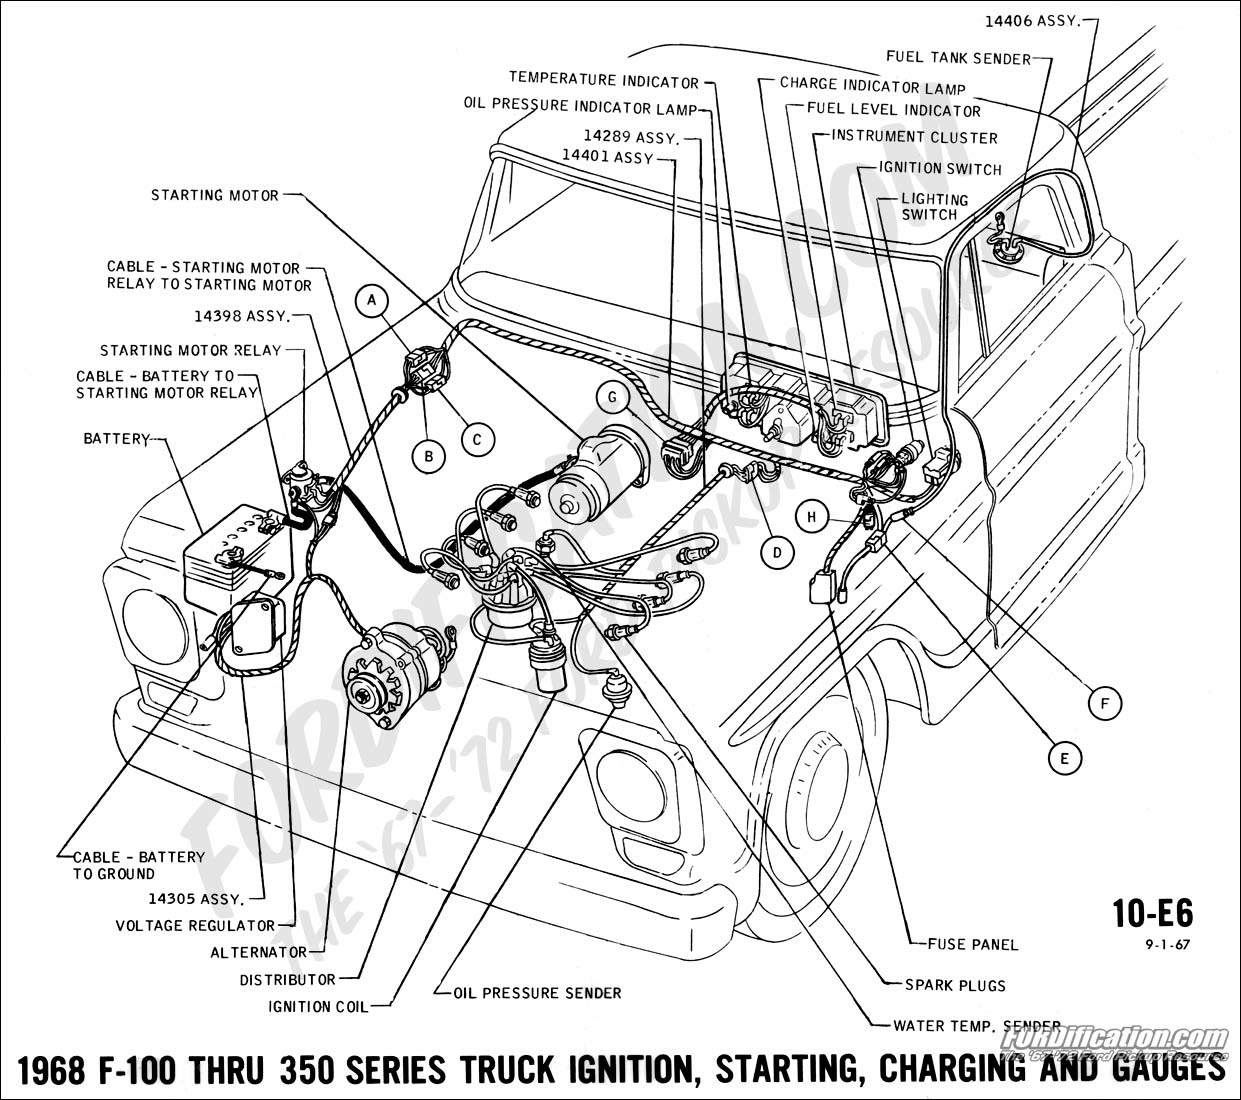 Corvette Spark Plug Wire Diagram